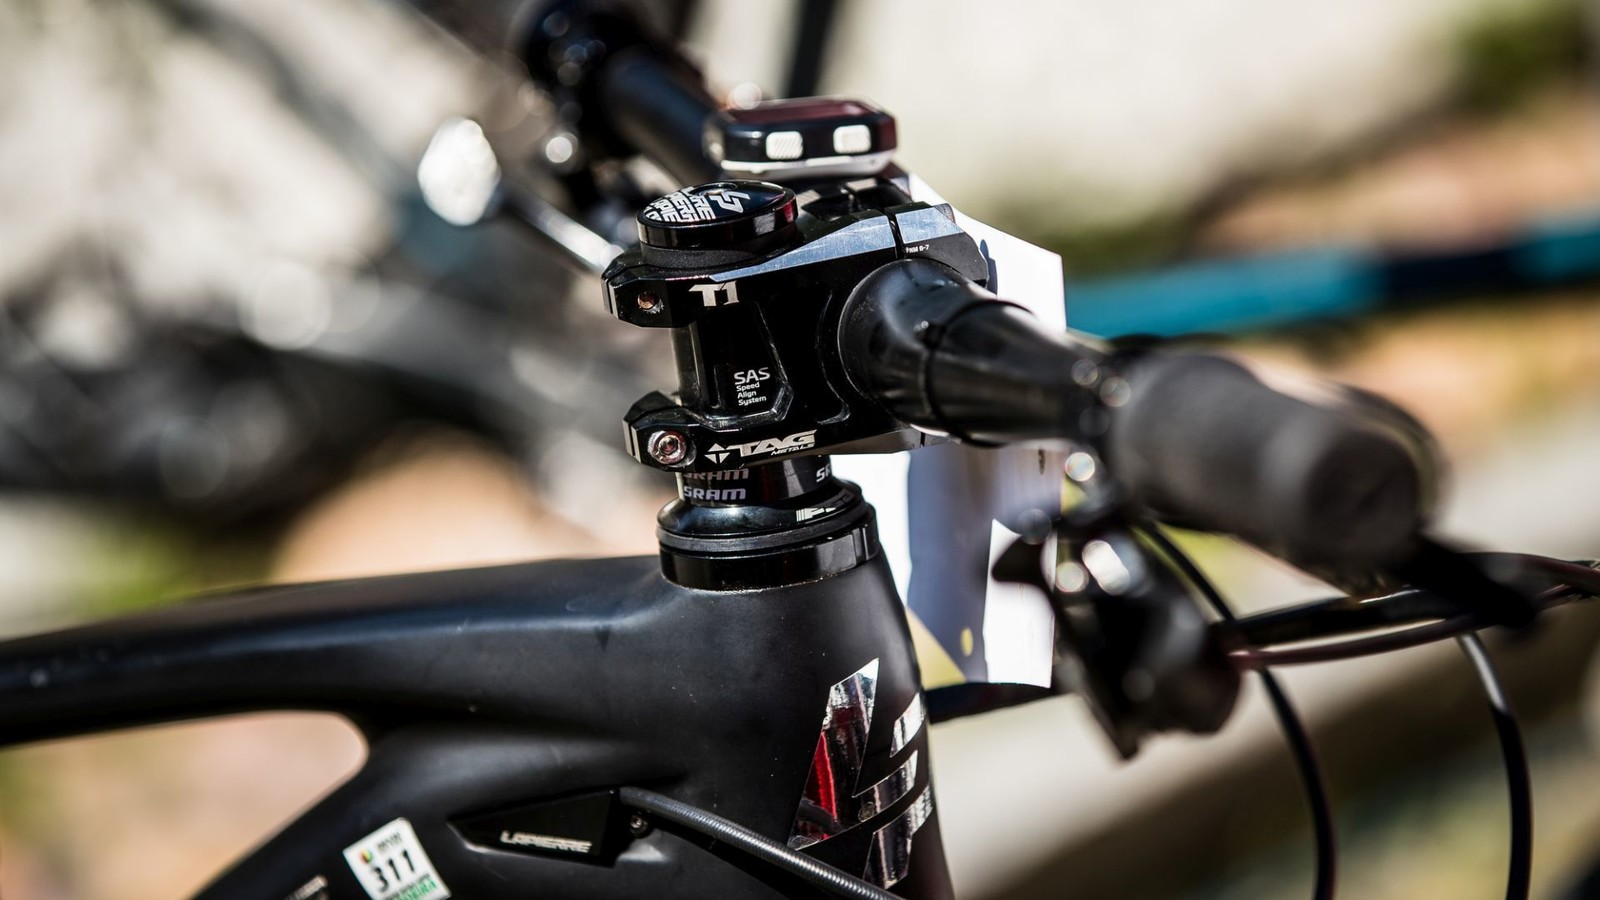 Motocross Brand TAG Metals Launches a Range of MX Inspired Mountain Bike Components